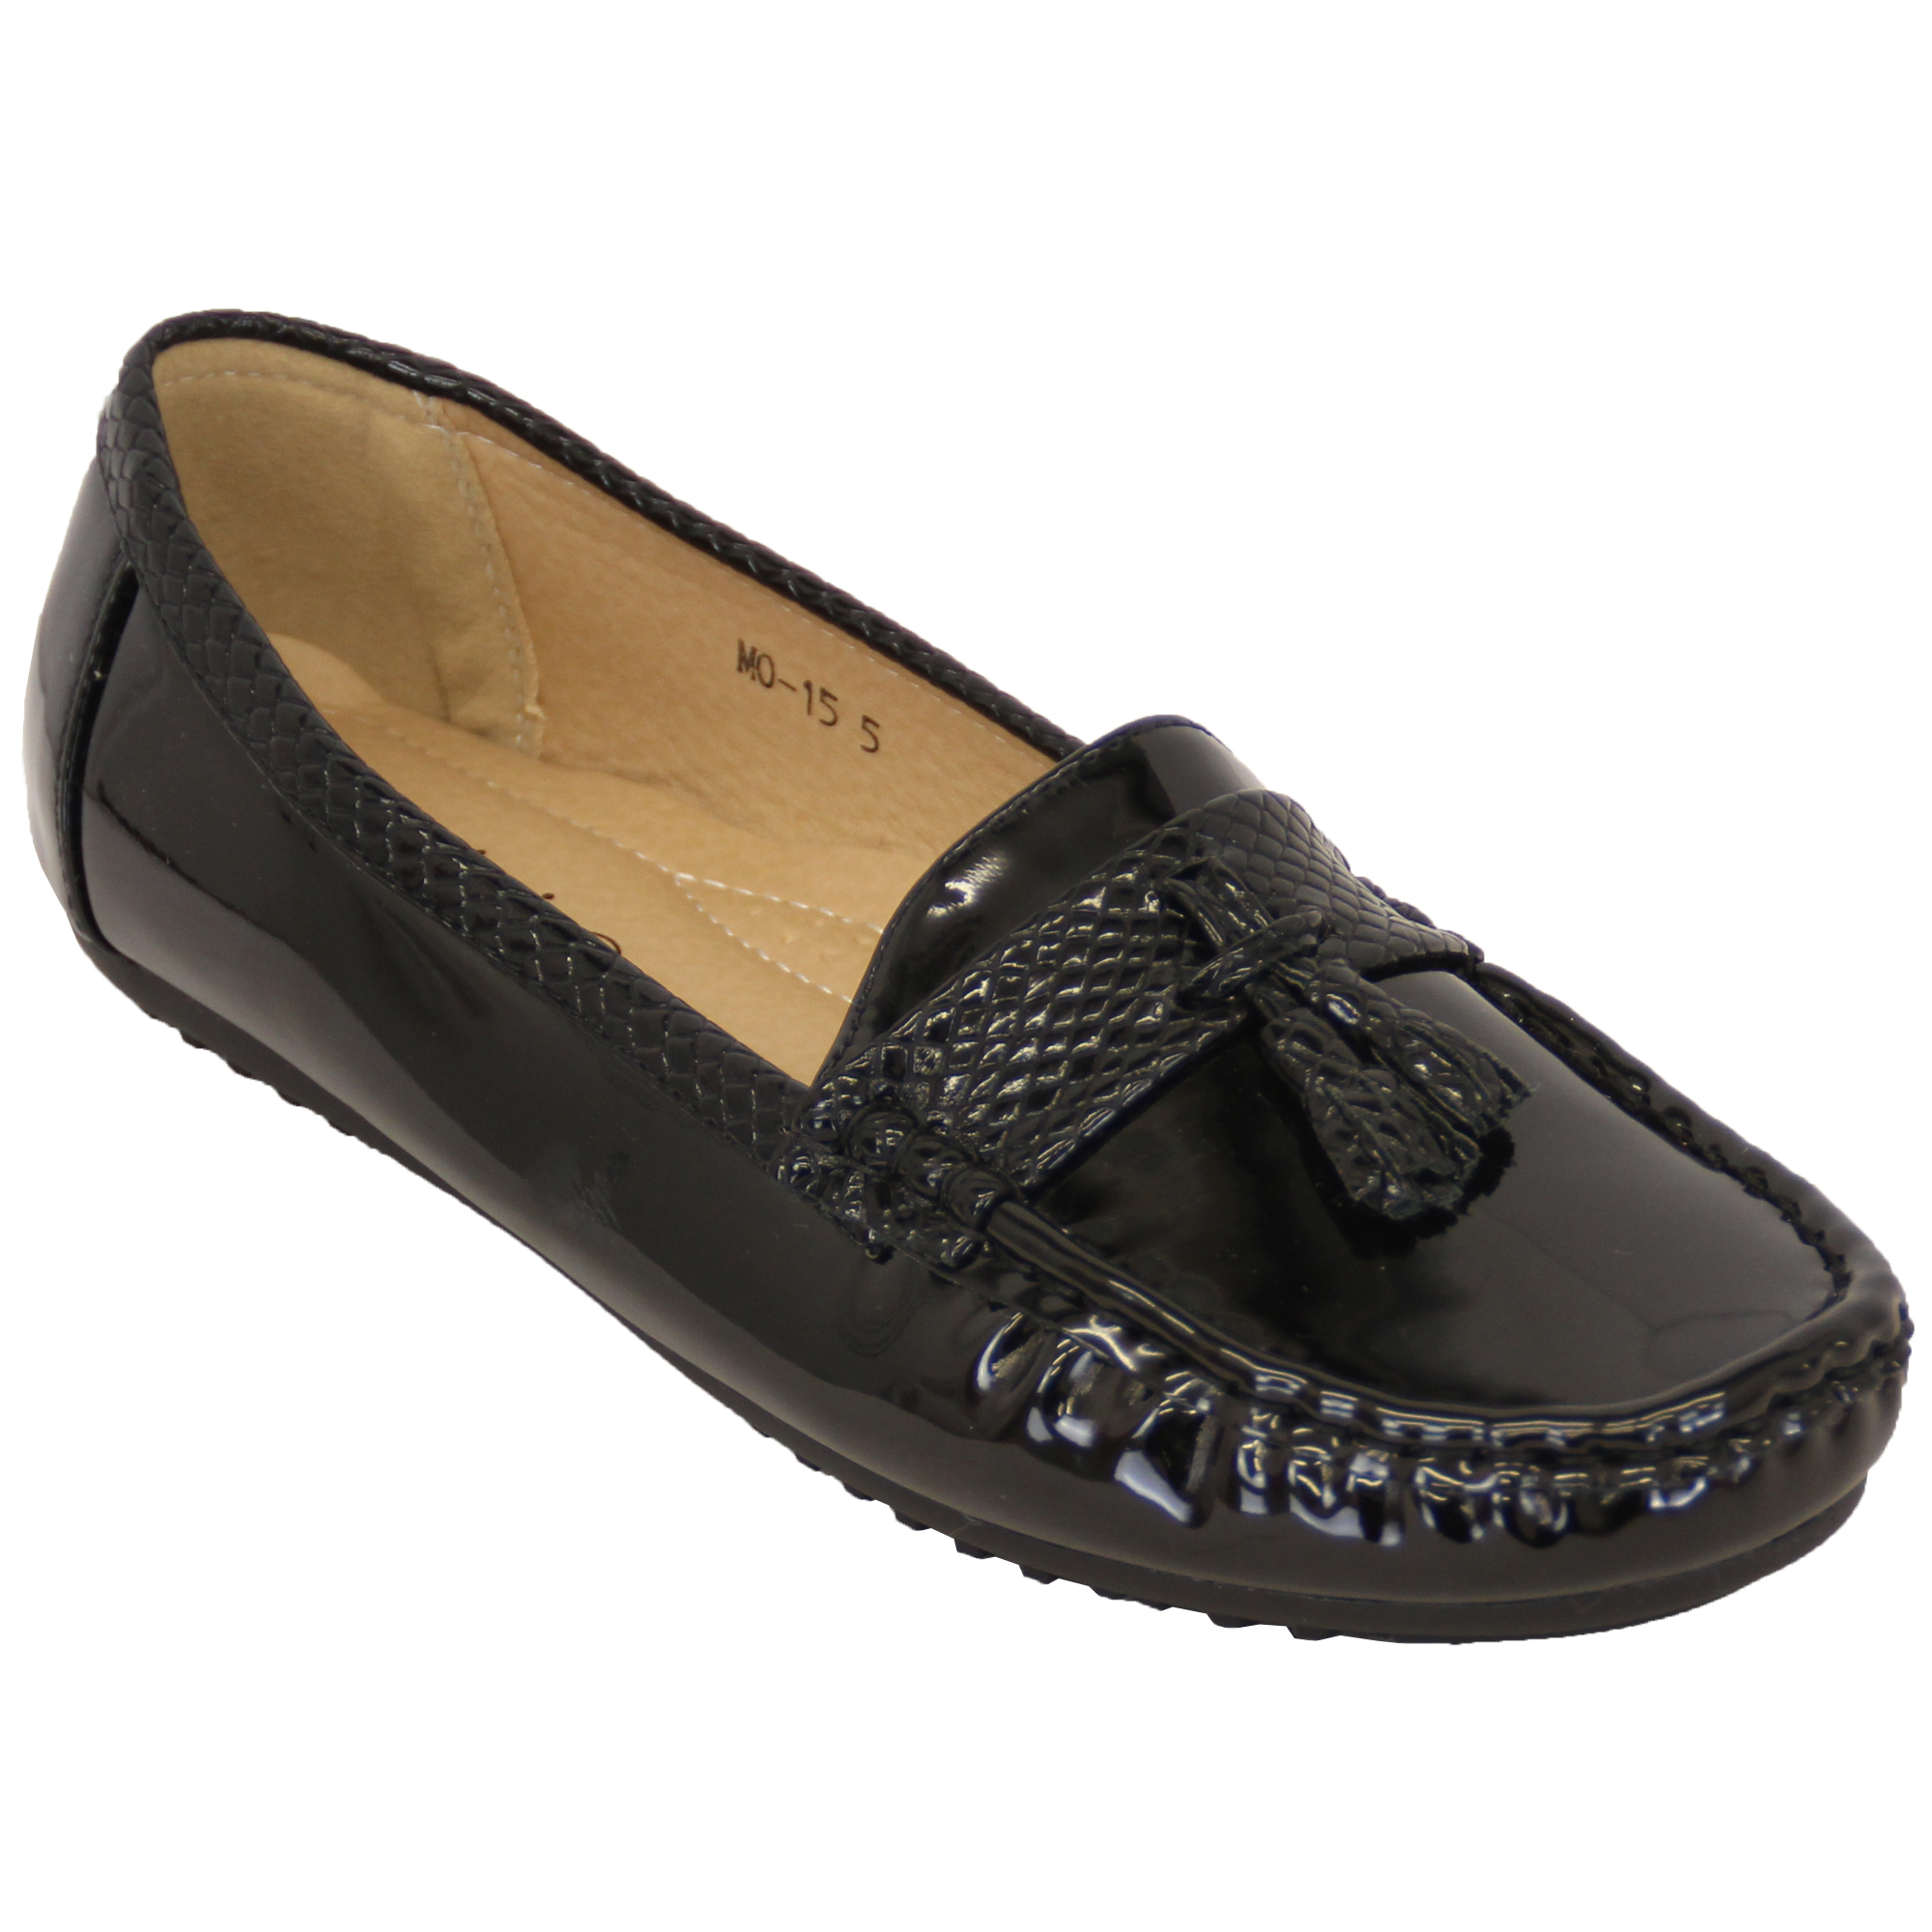 ladies loafers womens kelsi slip on shoes leather look